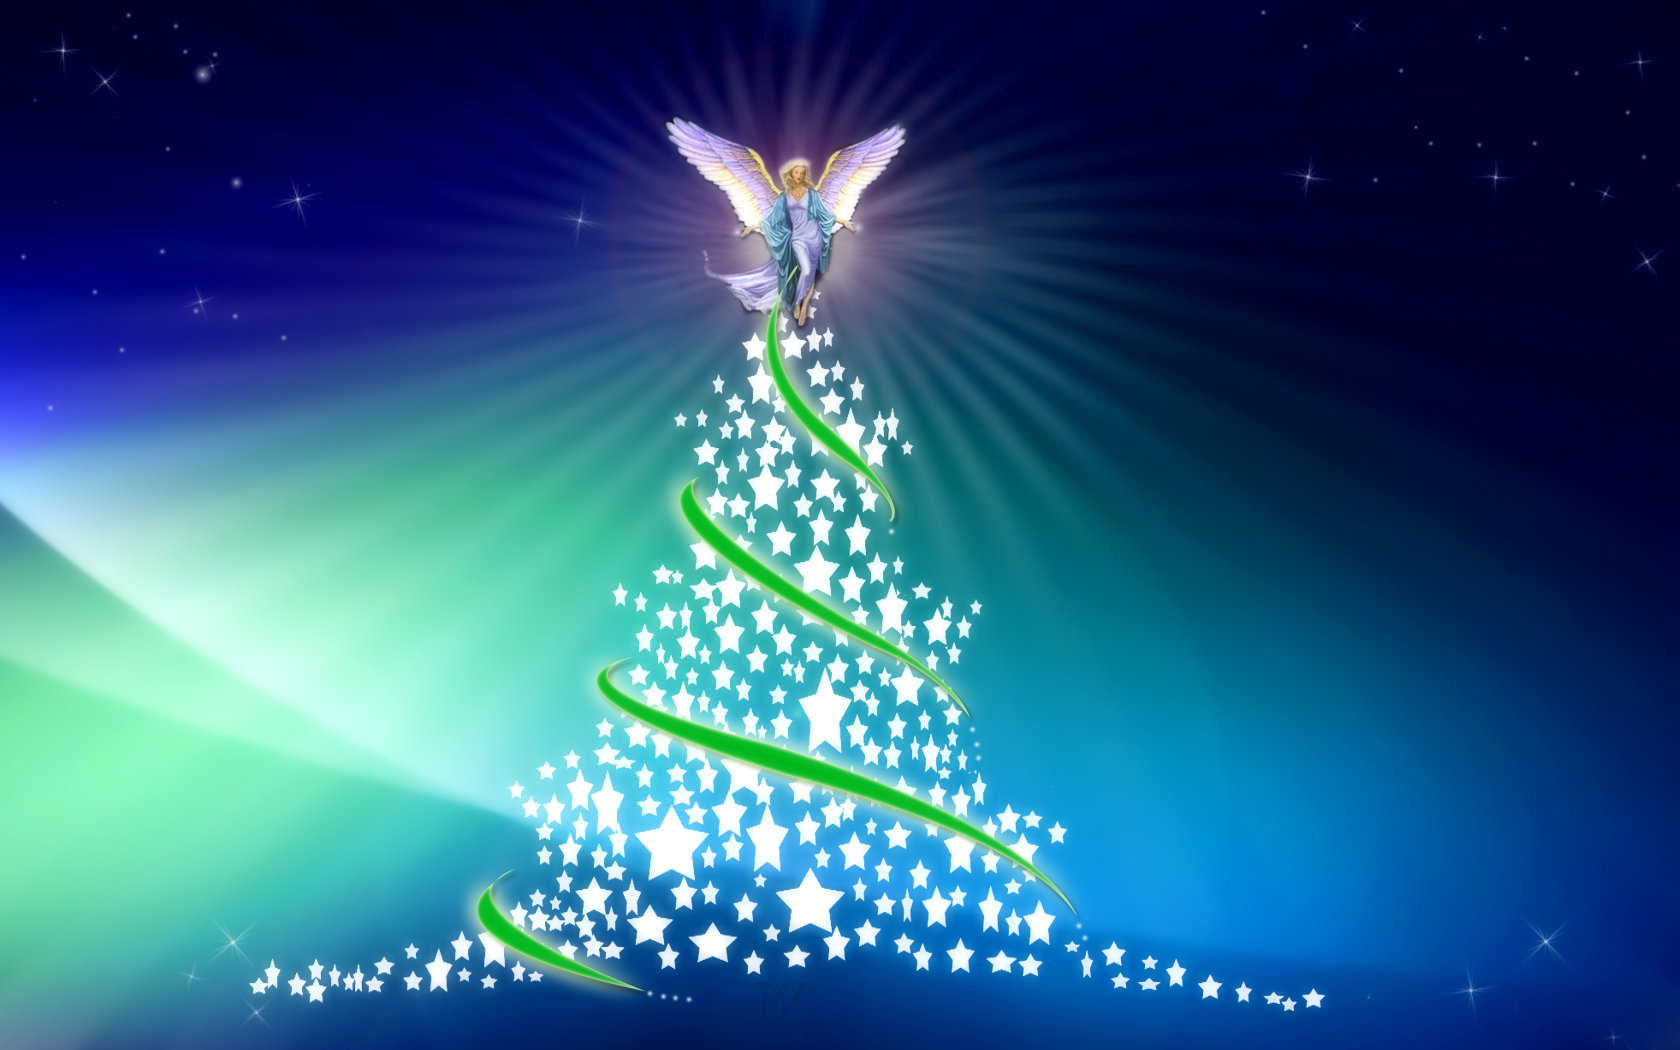 Merry Christmas And Peace World Wallpaper Wallpaper with 1680x1050 1680x1050